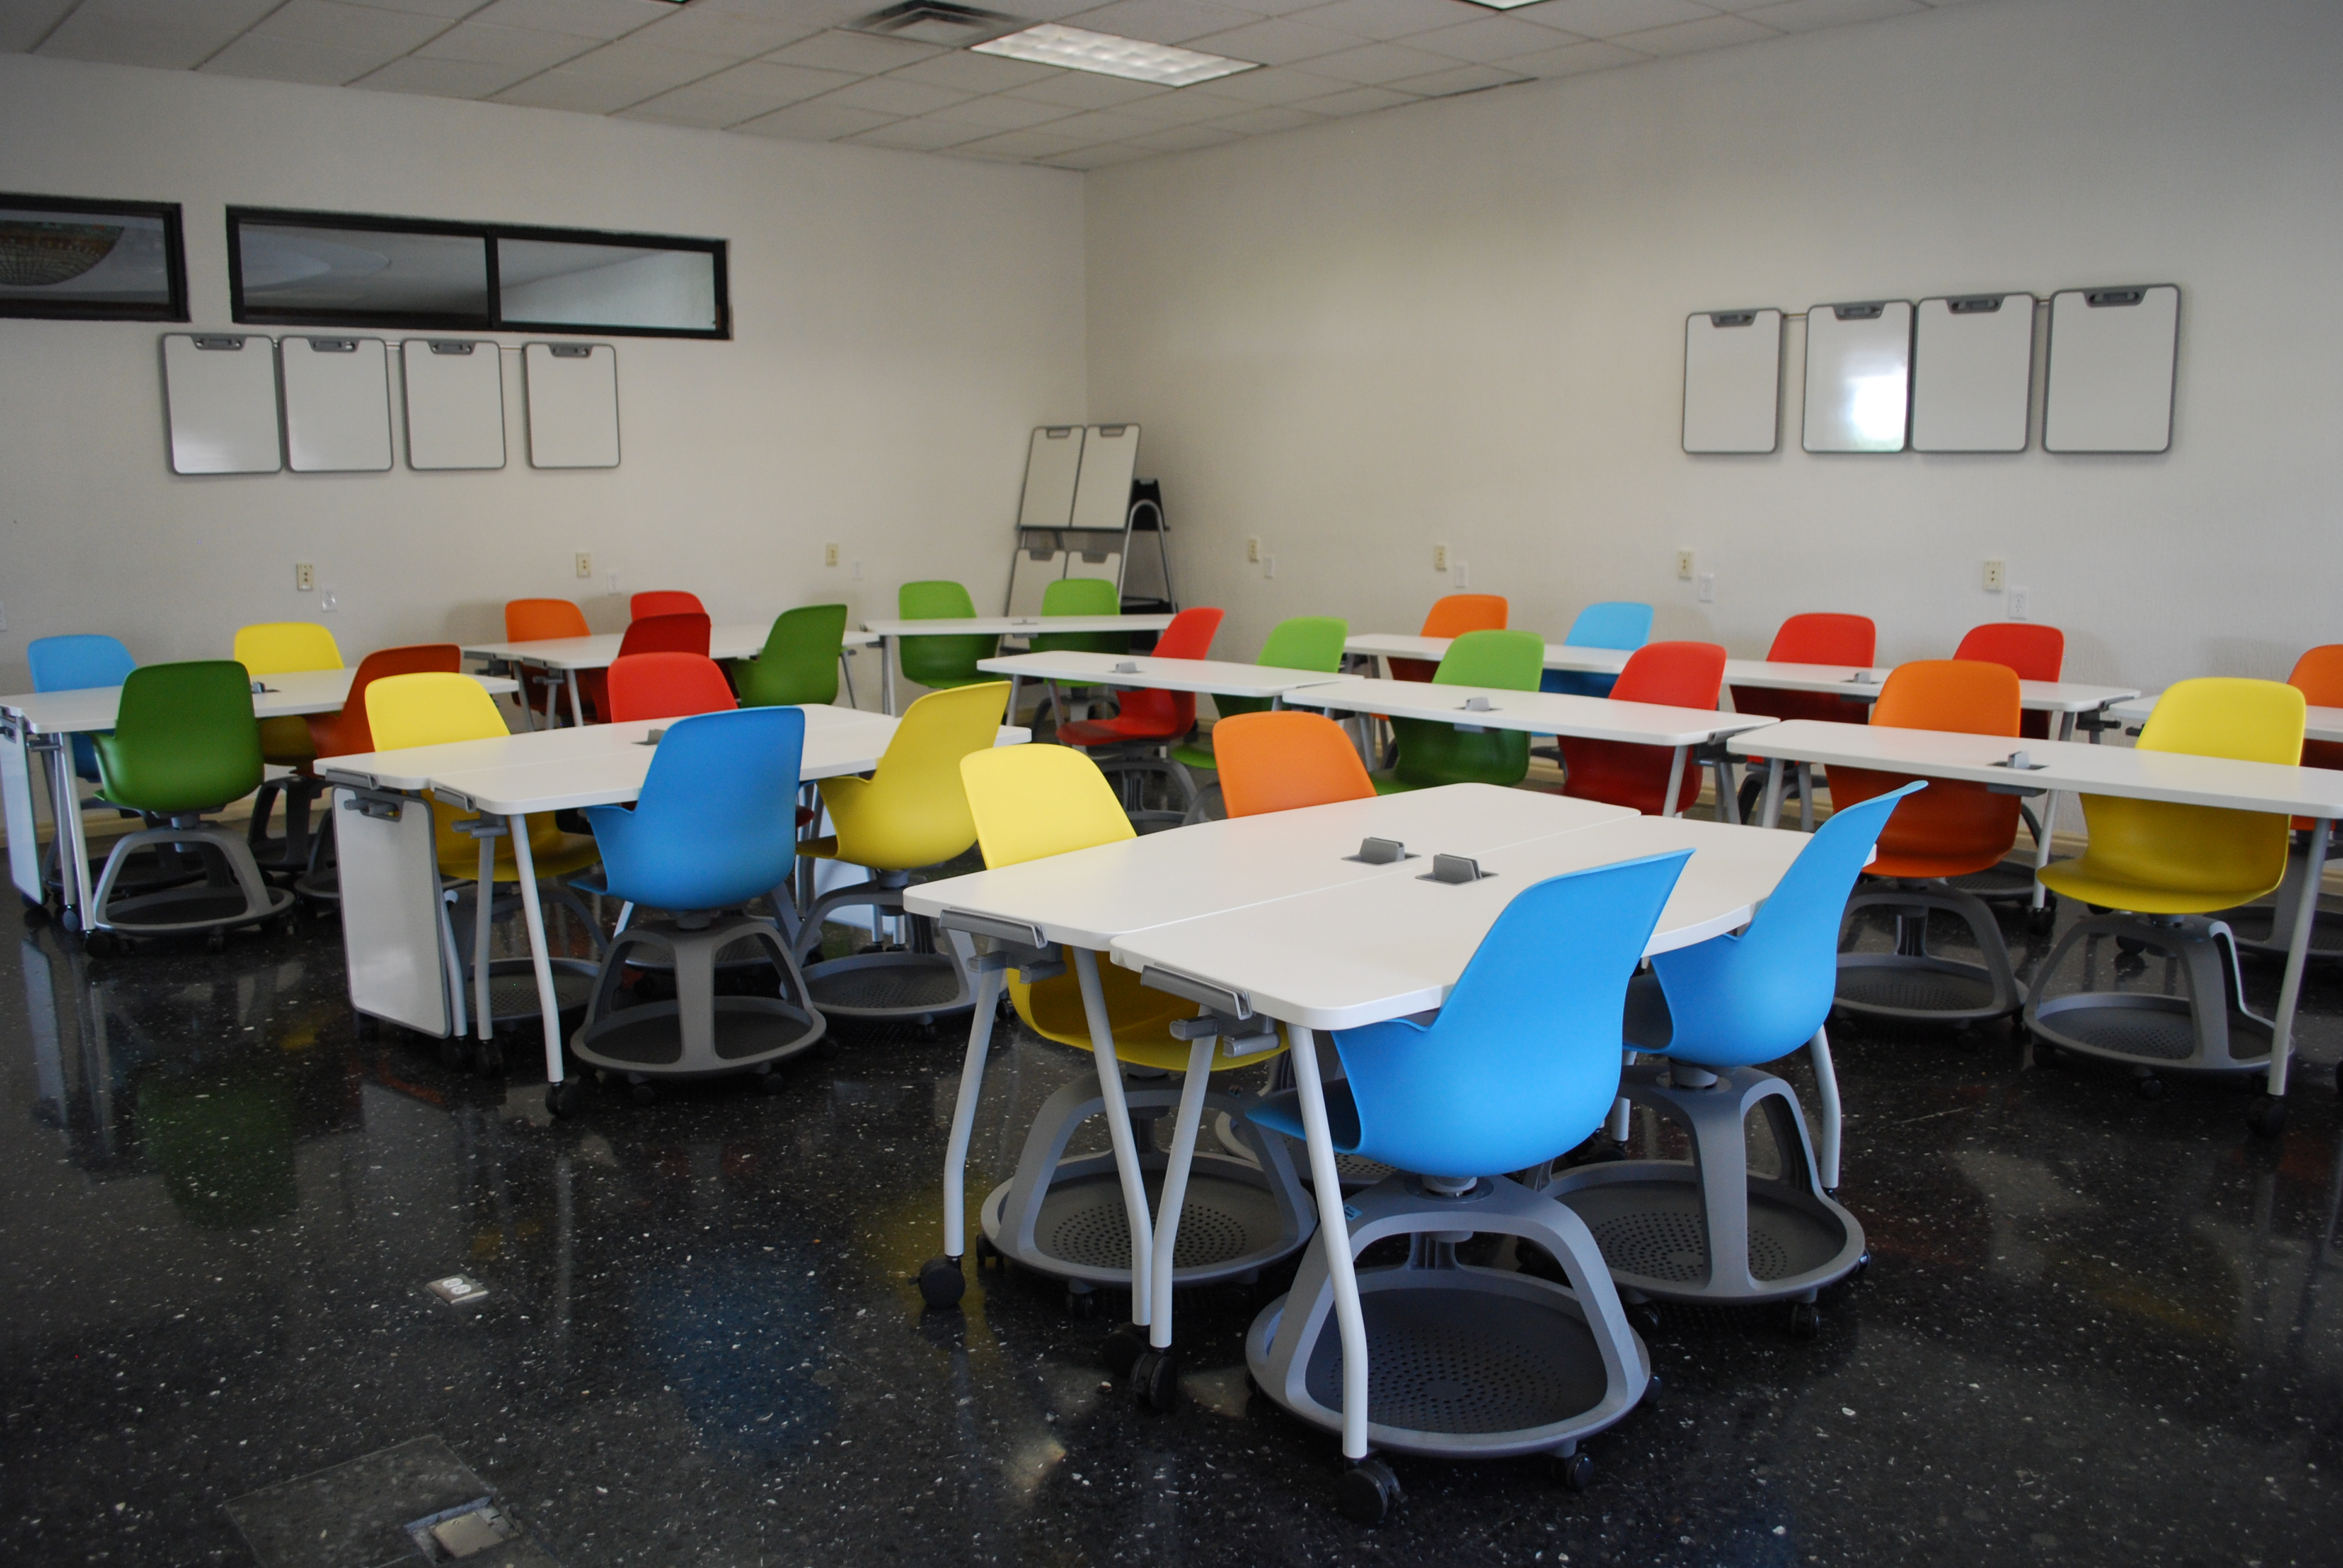 List Of Classroom Furnitures : Why your seating plan could be the key to better learning